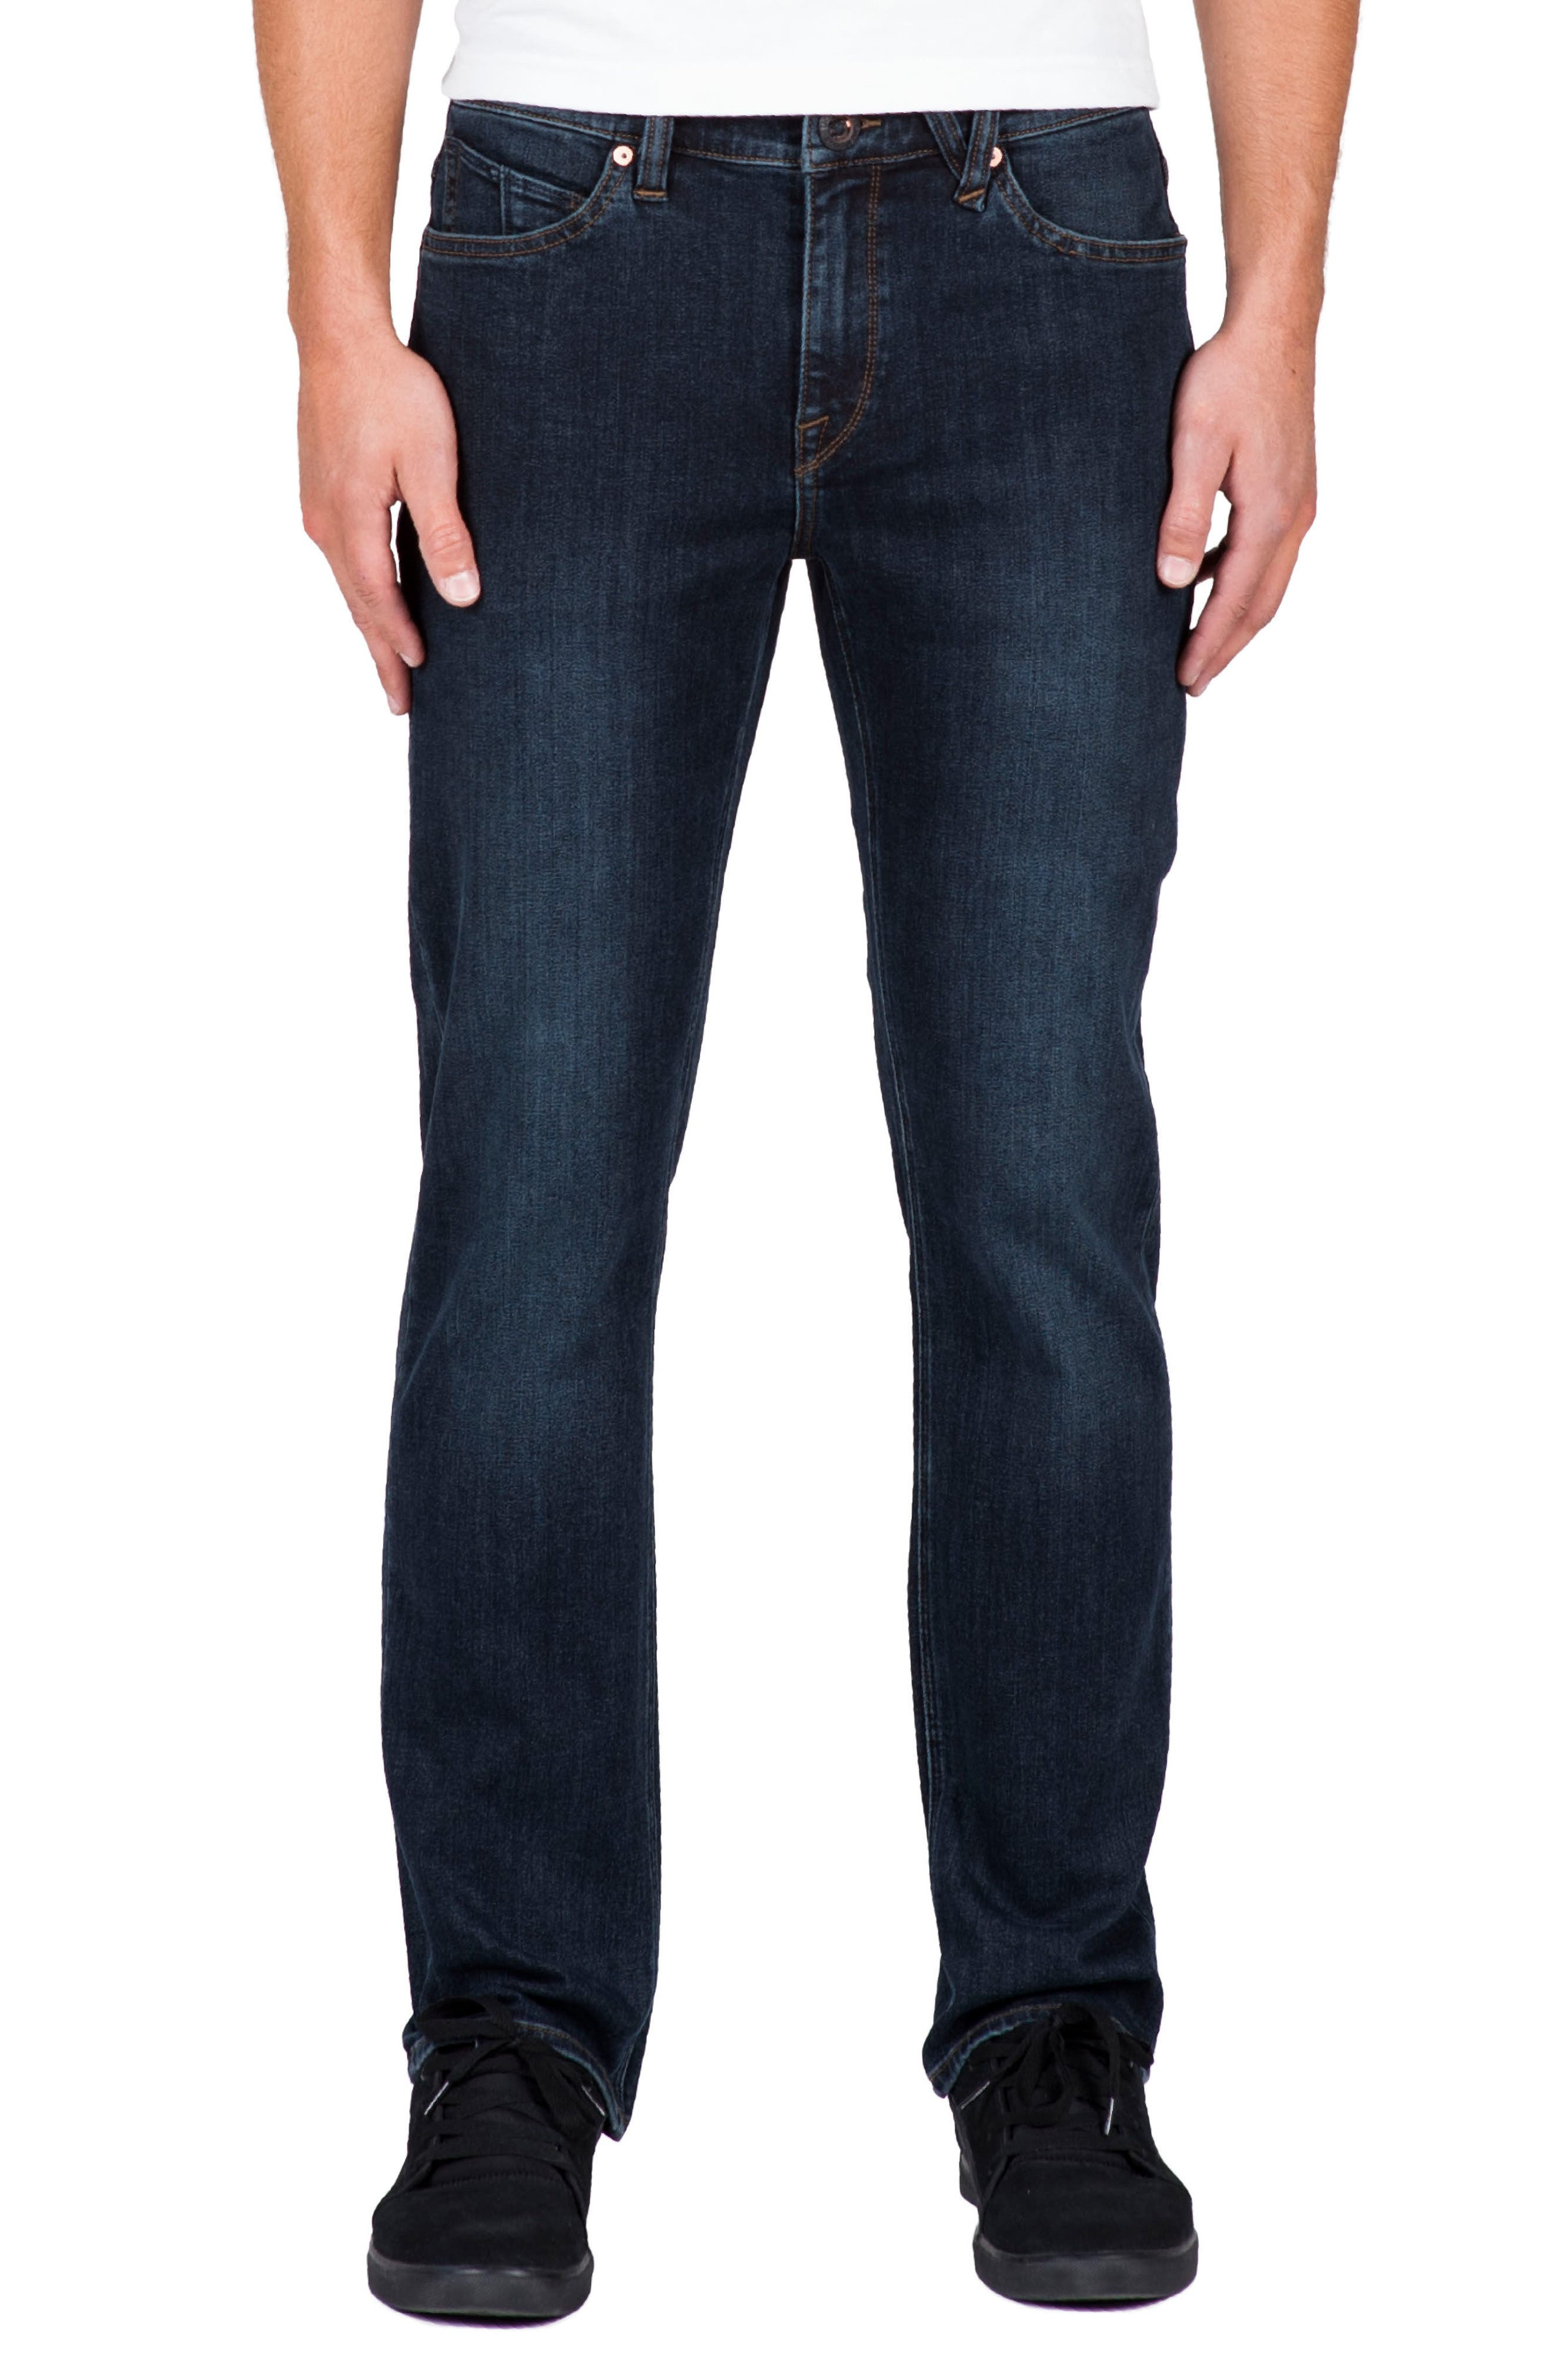 'Solver' Straight Leg Jeans,                         Main,                         color, BLUE VNT